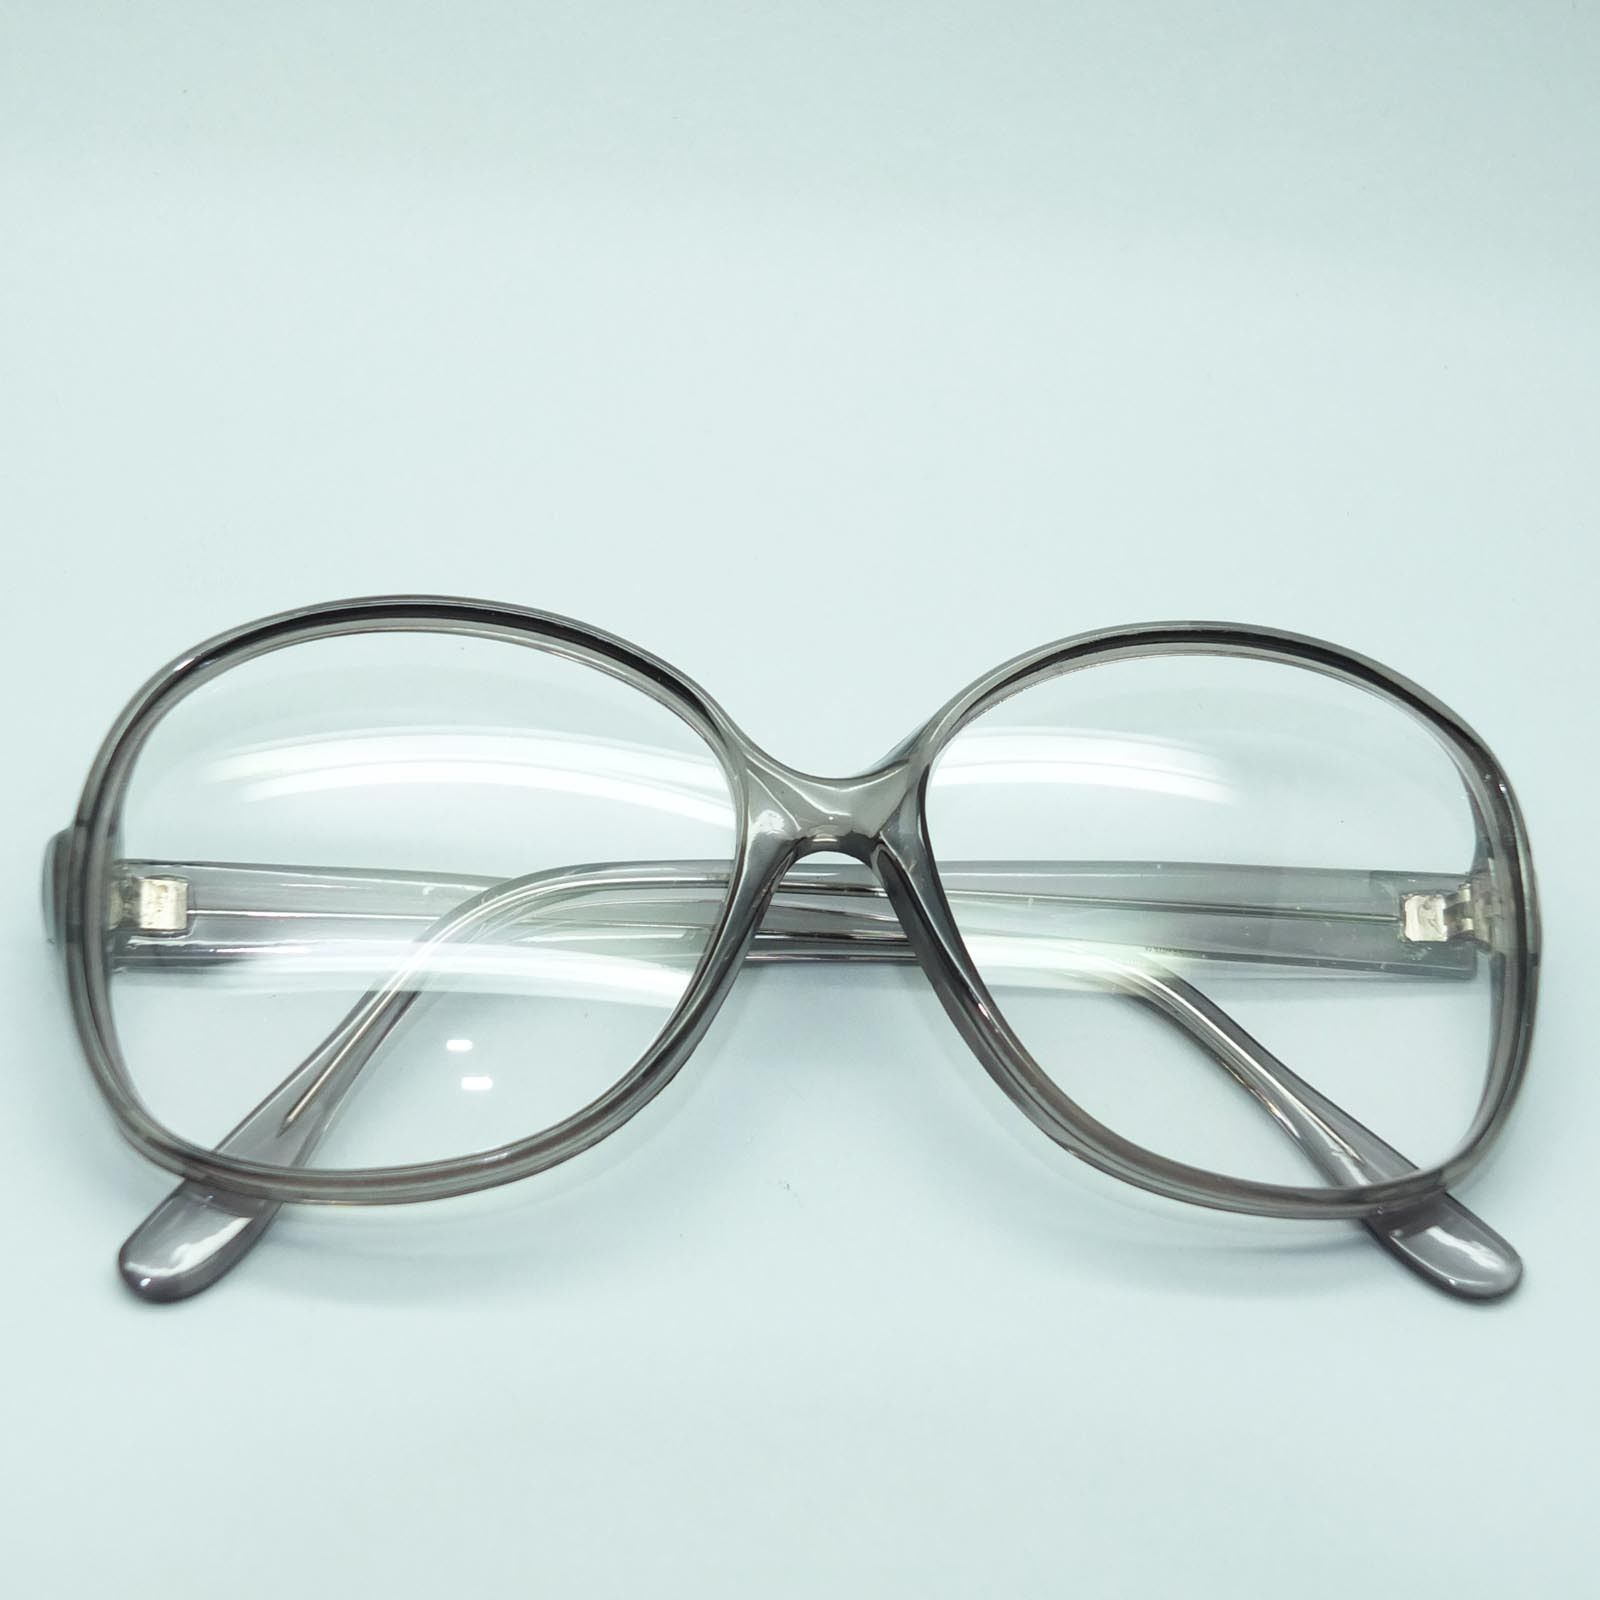 Gray Frame Reading Glasses : Mega Huge Oversize Statement Bold Polished Dark Gray Frame ...